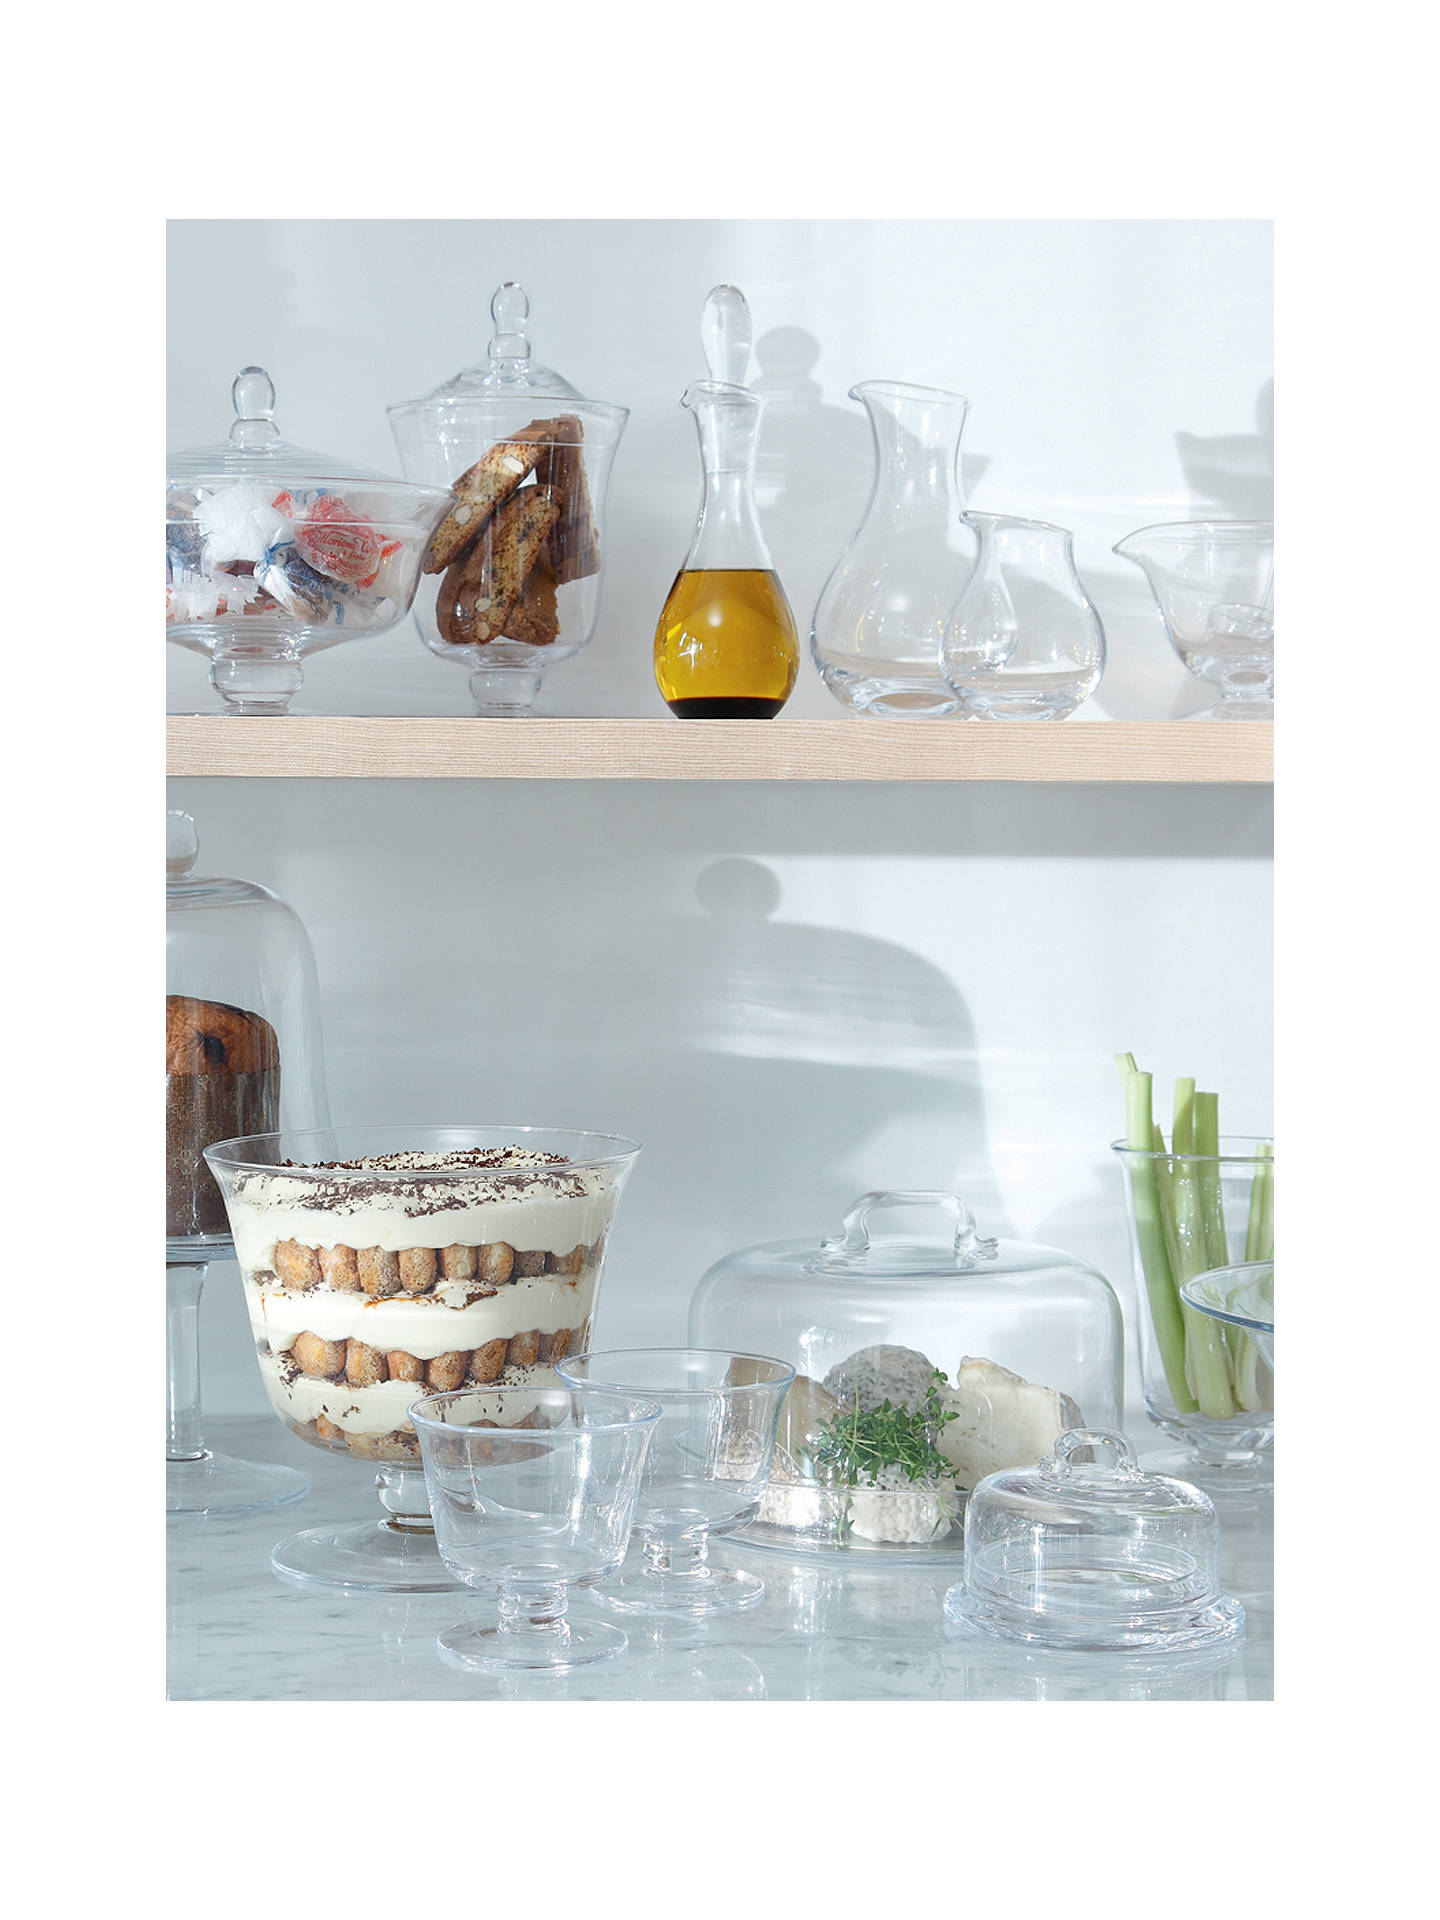 BuyLSA International Serve Oil/Vinegar Bottle, 300ml Online at johnlewis.com